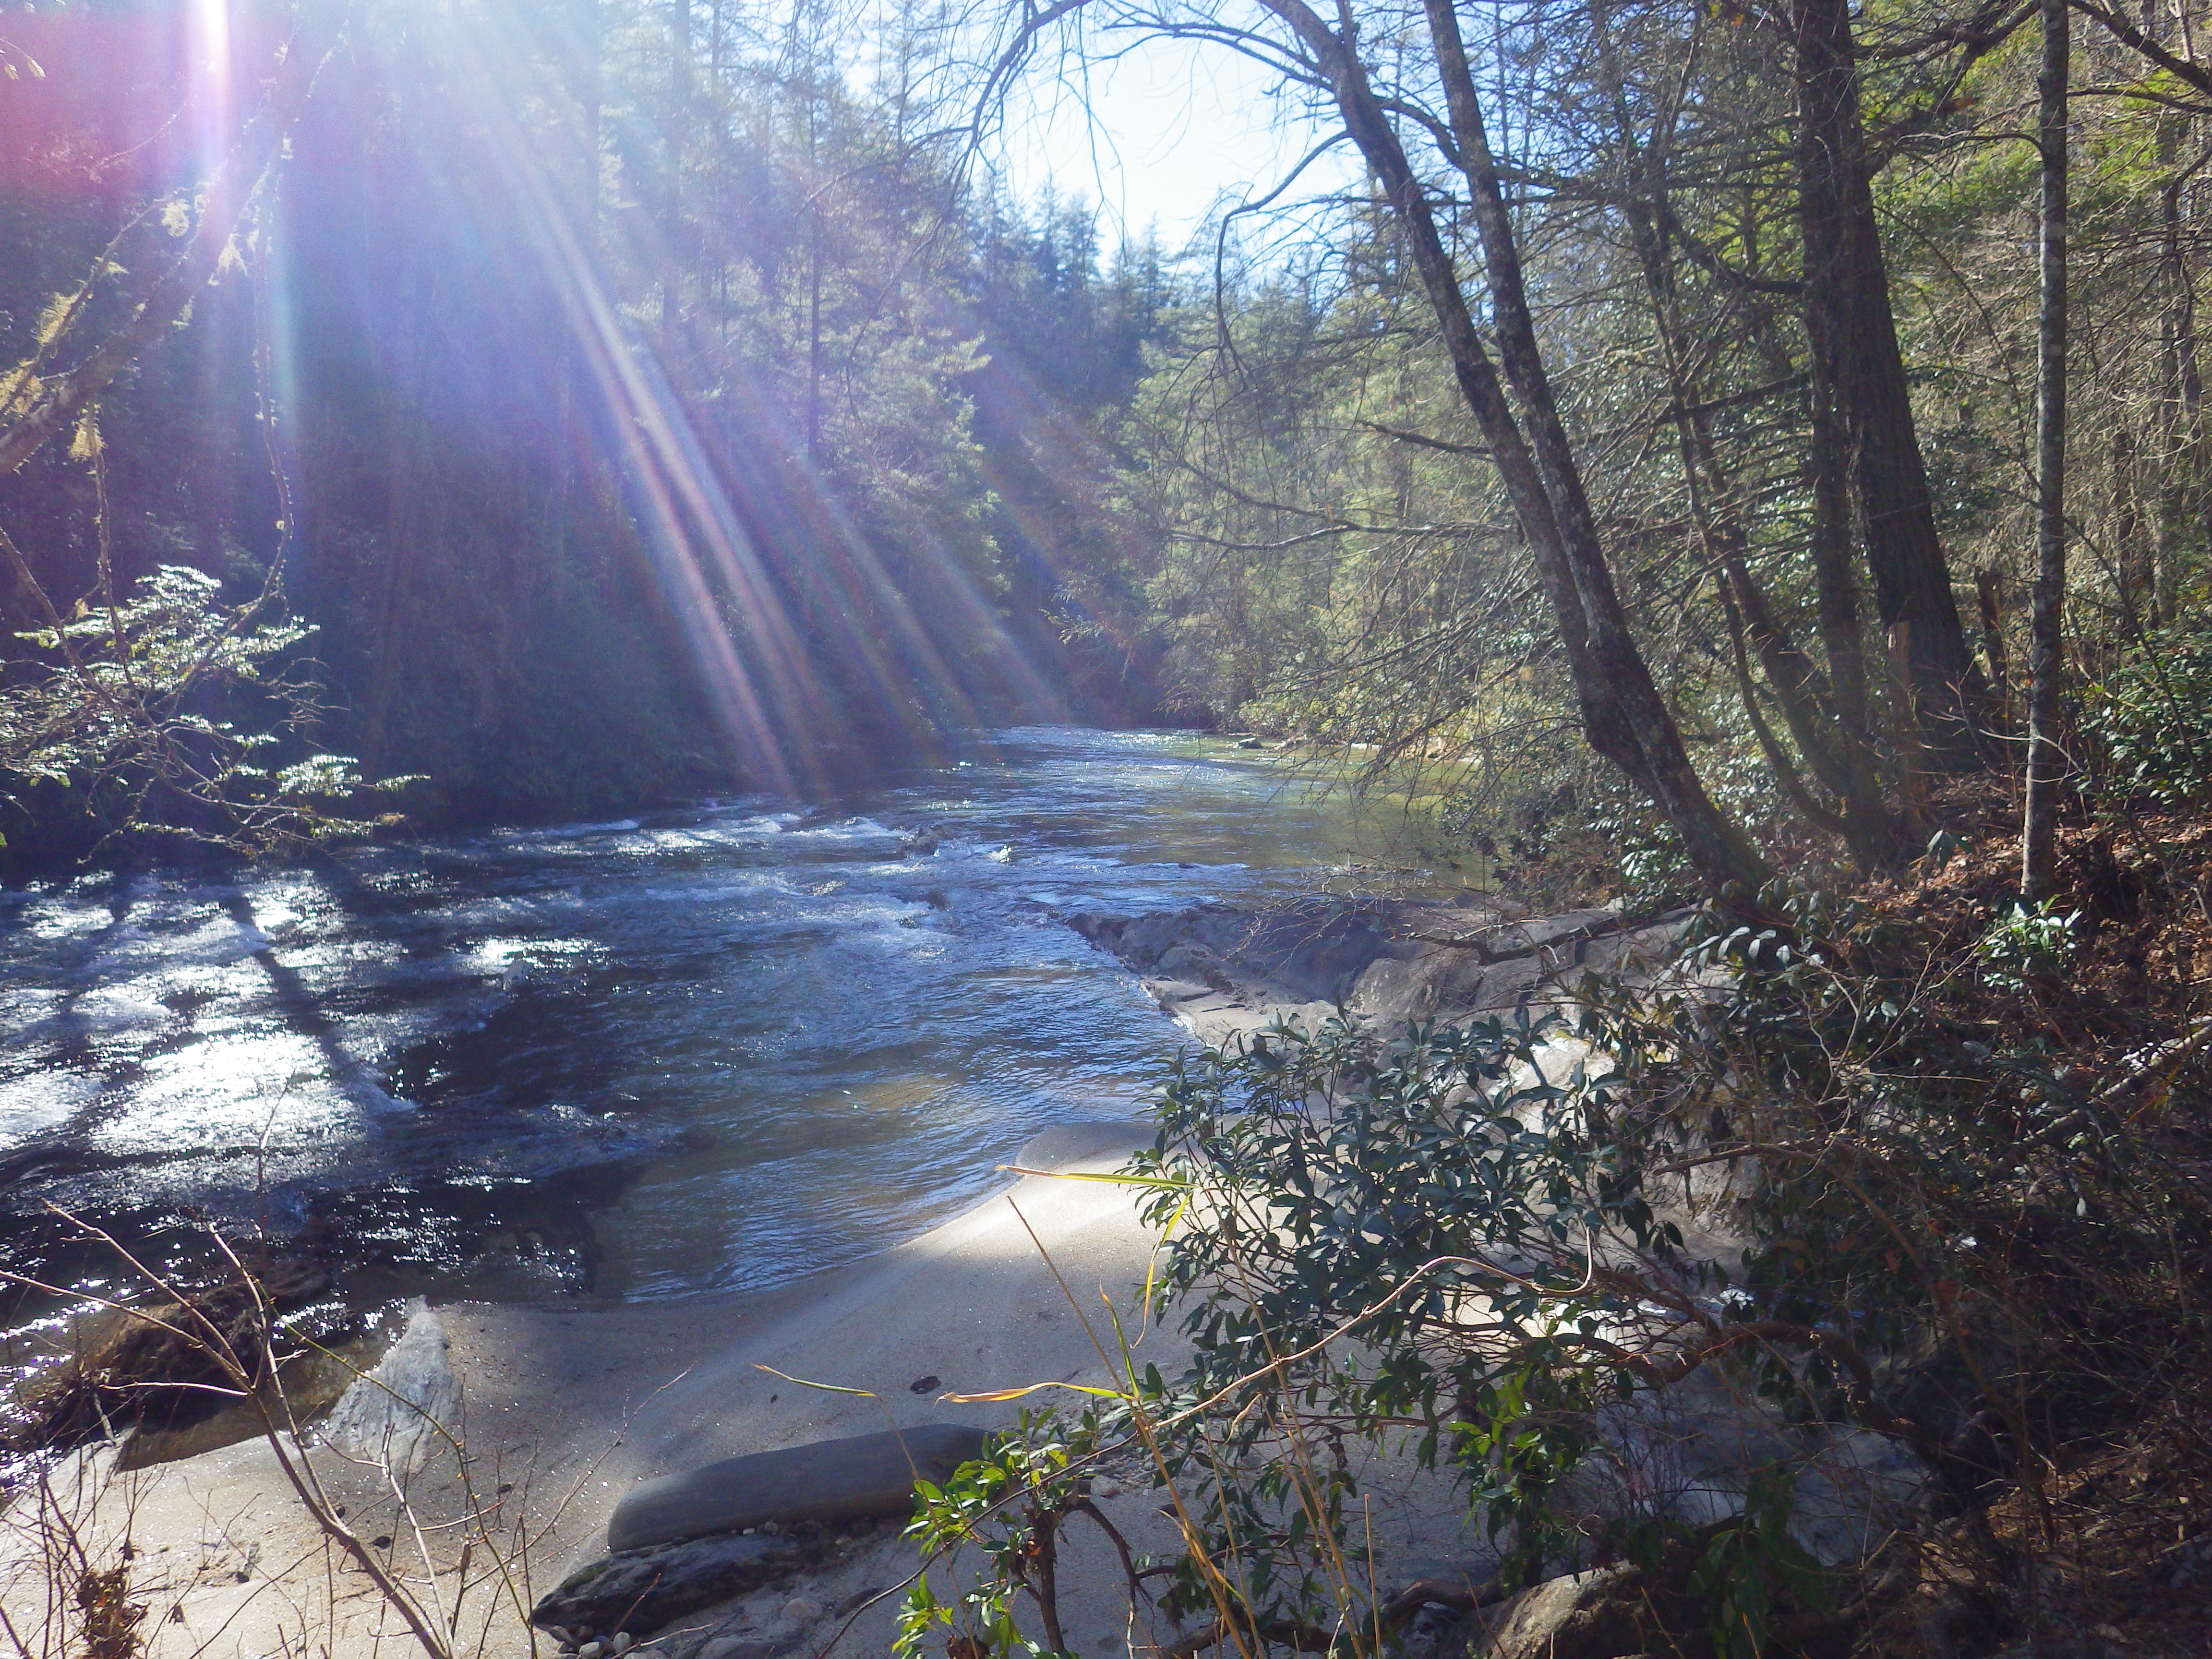 On the Banks of the Chattooga